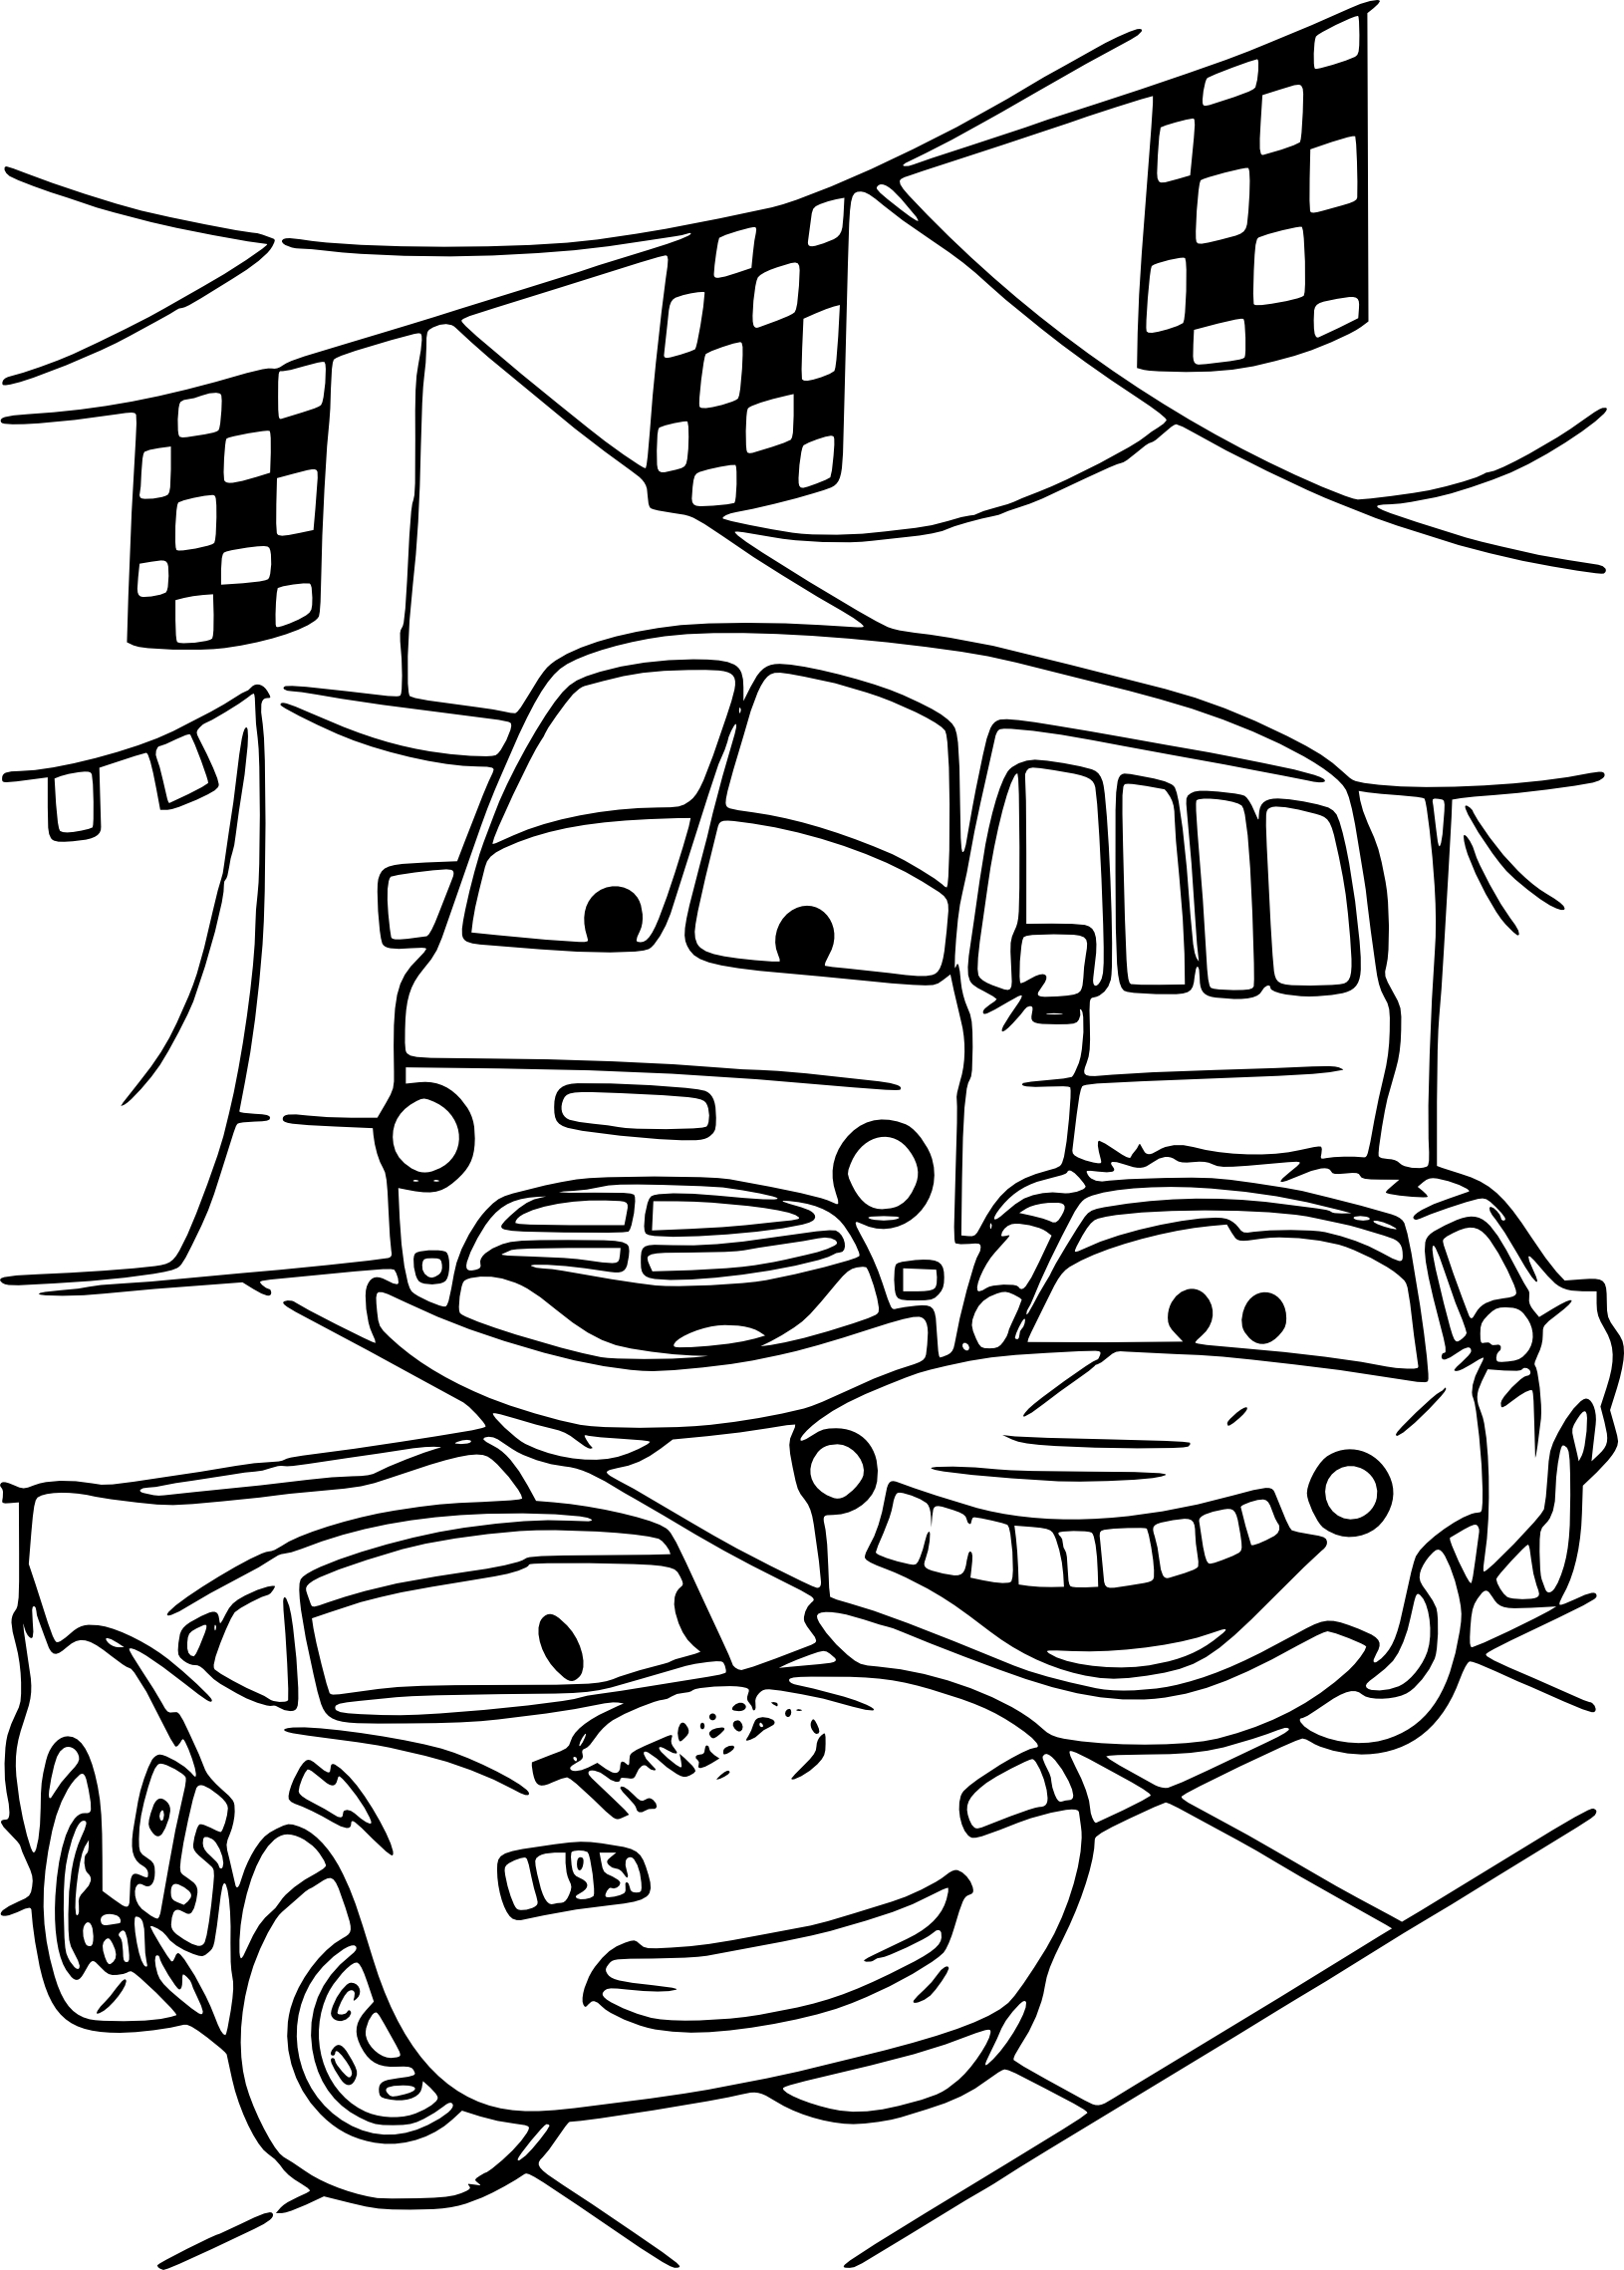 Cars coloriage disney cars imprimer - Coloriage cars image ...